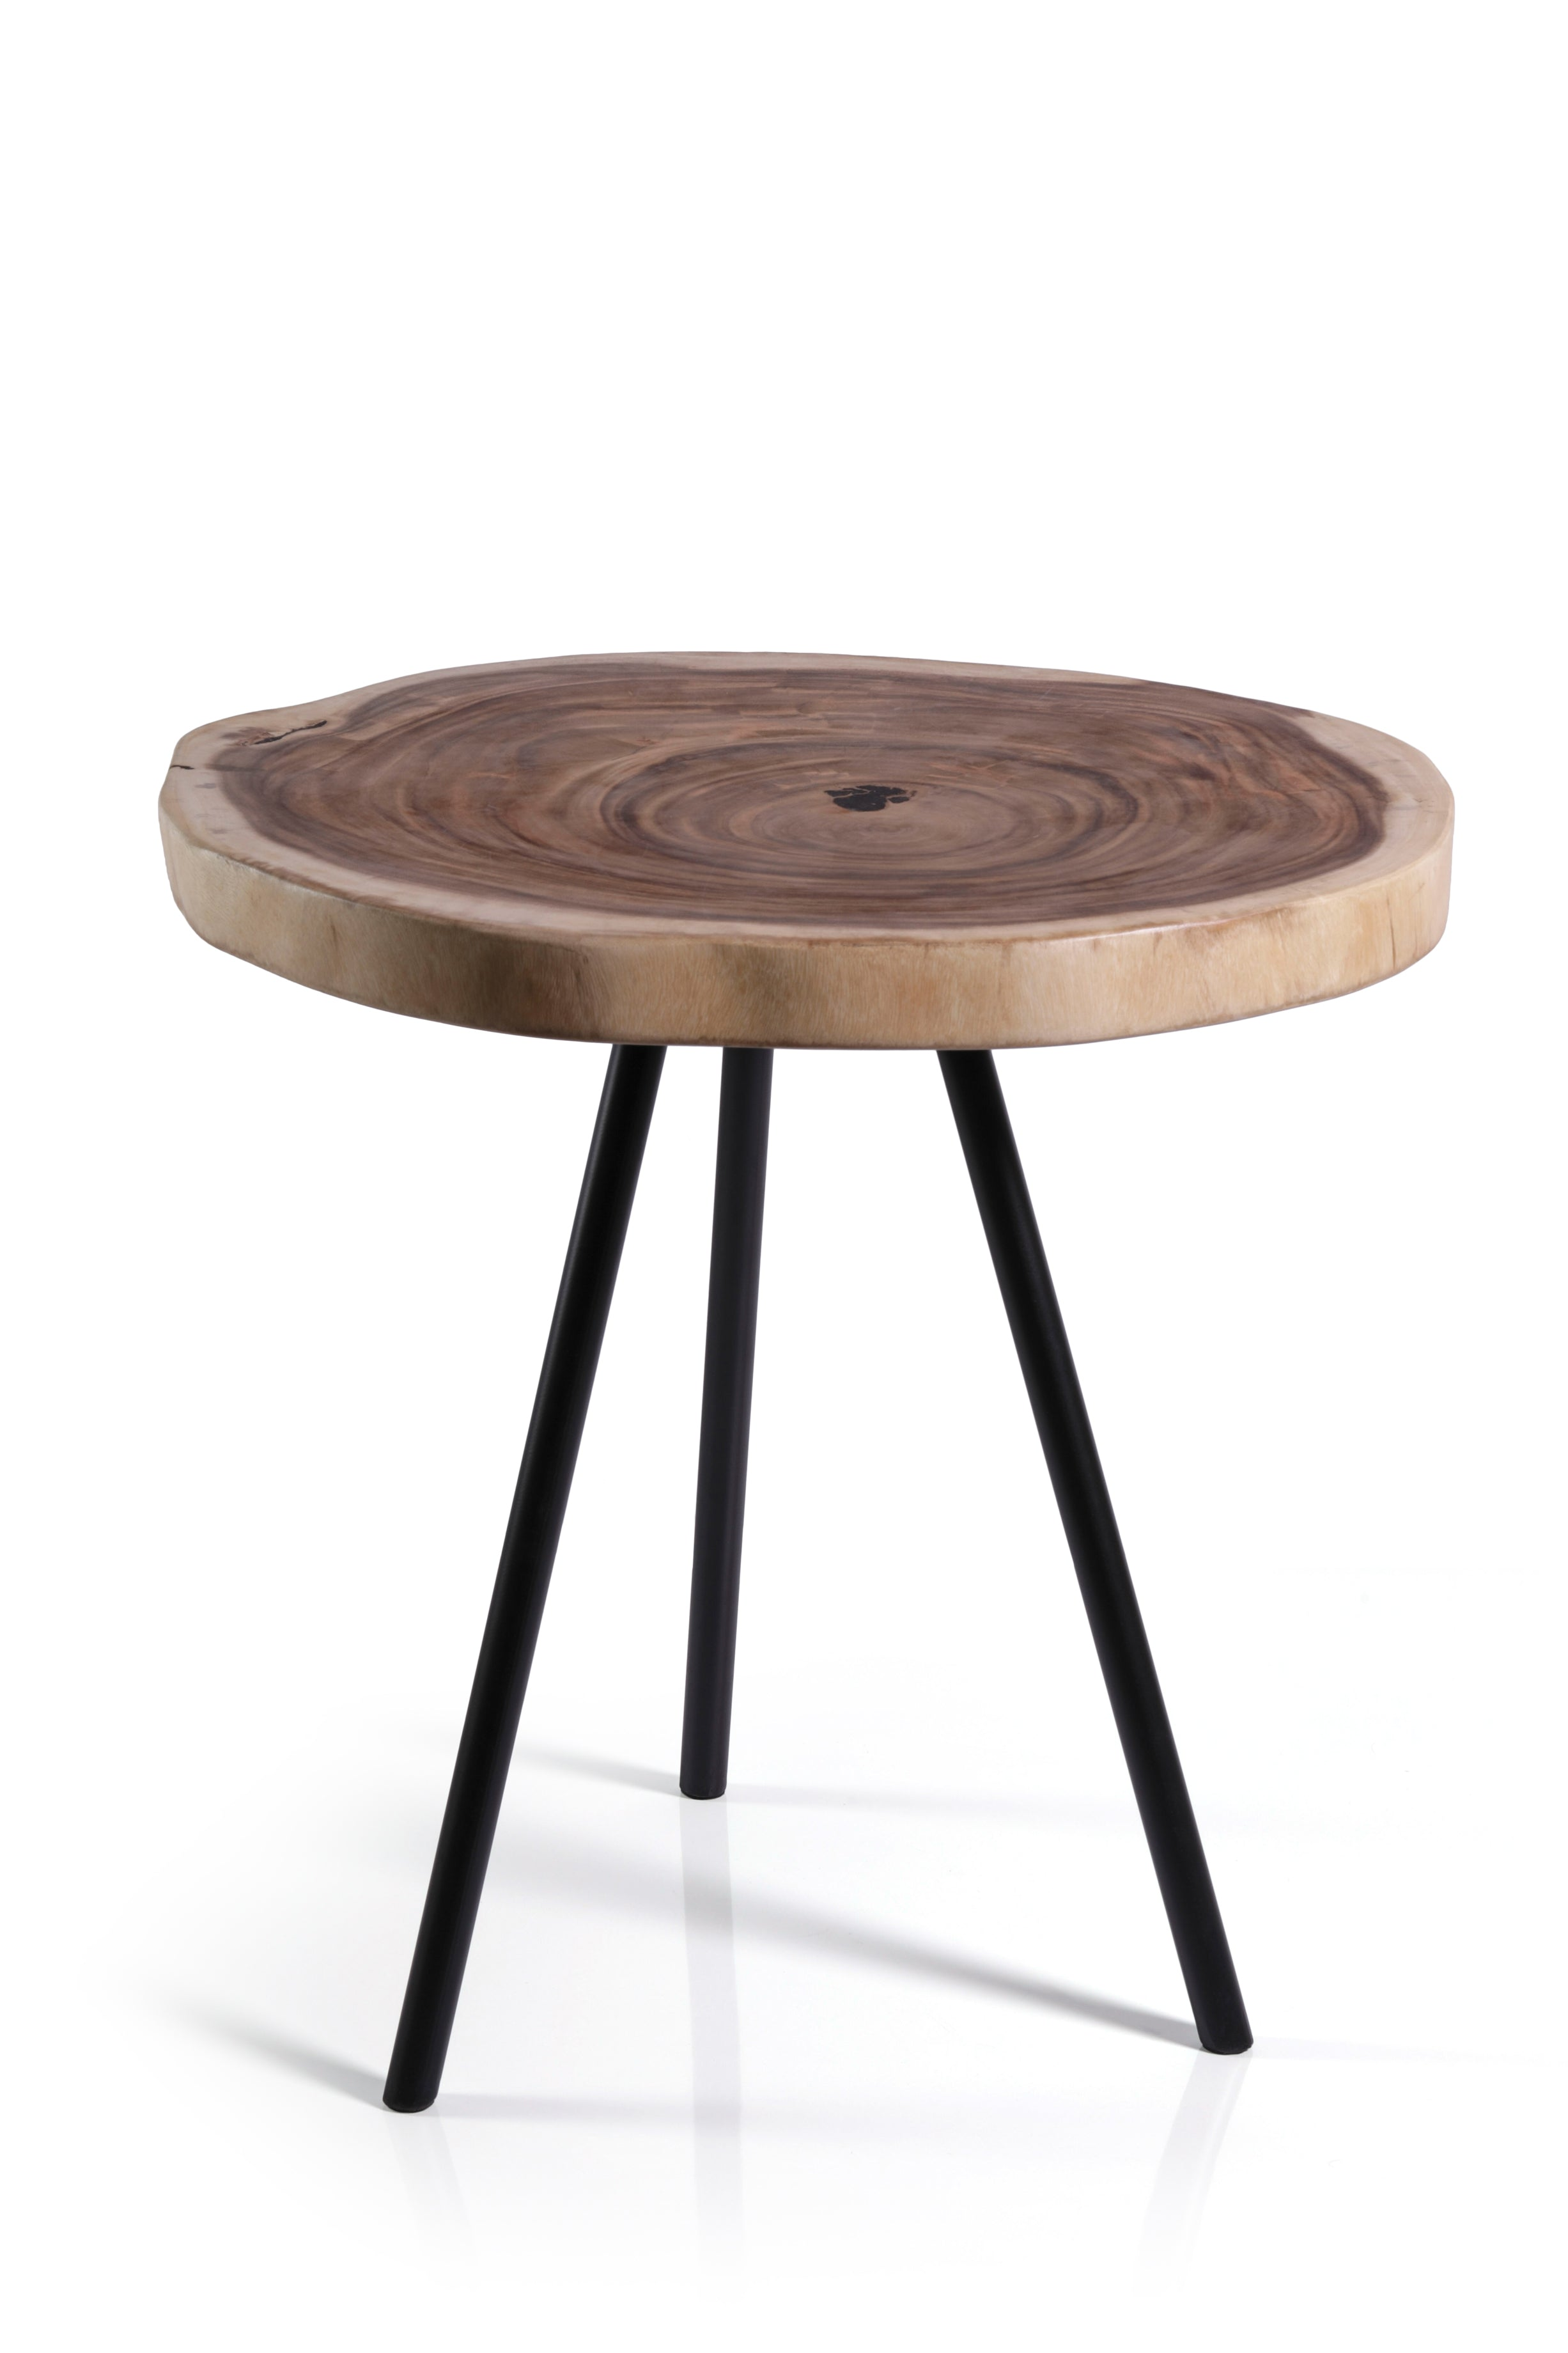 Matina Suar Wood Patio Table - CARLYLE AVENUE